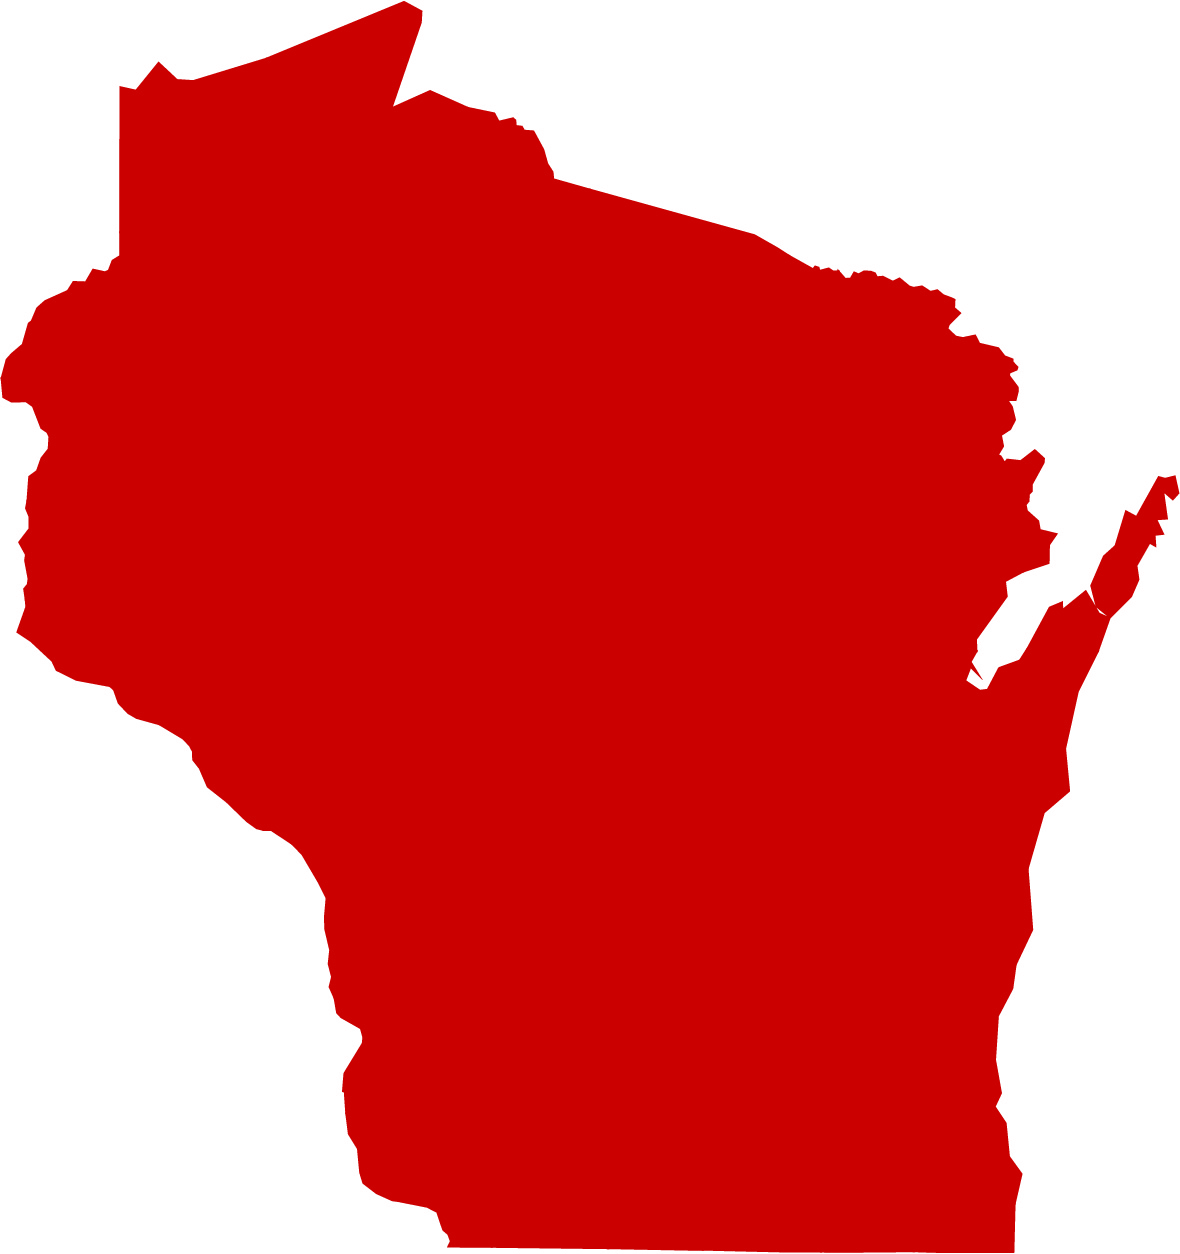 Image of the State of Wisconsin